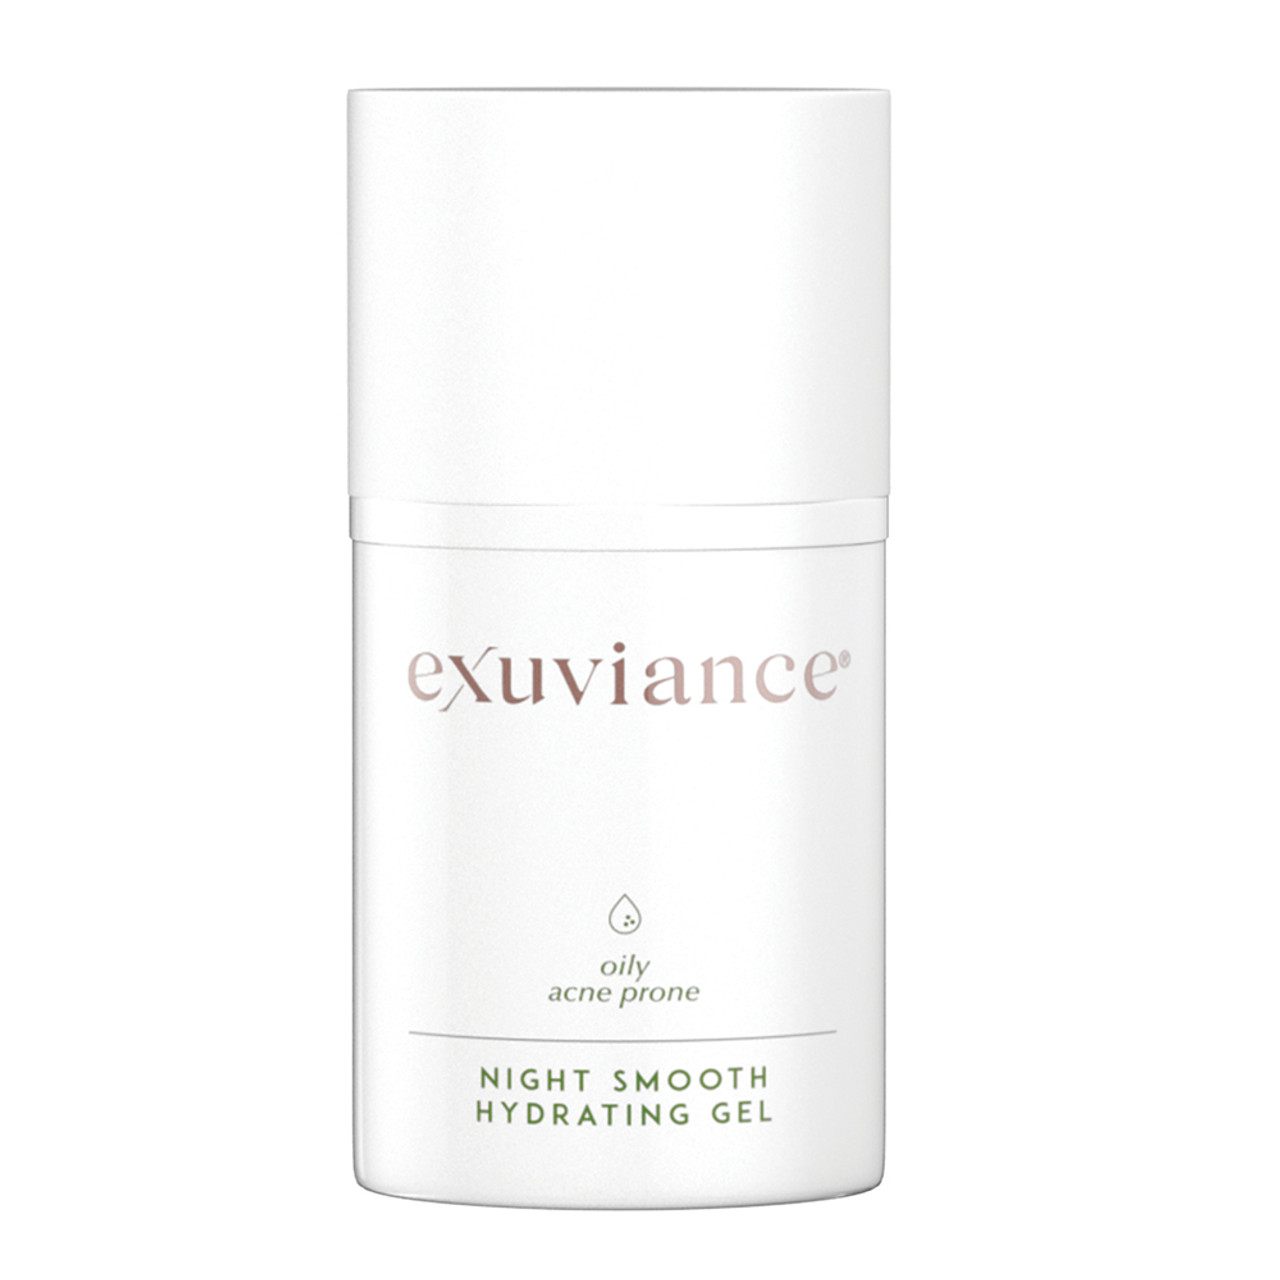 Exuviance Night Smooth Hydrating Gel